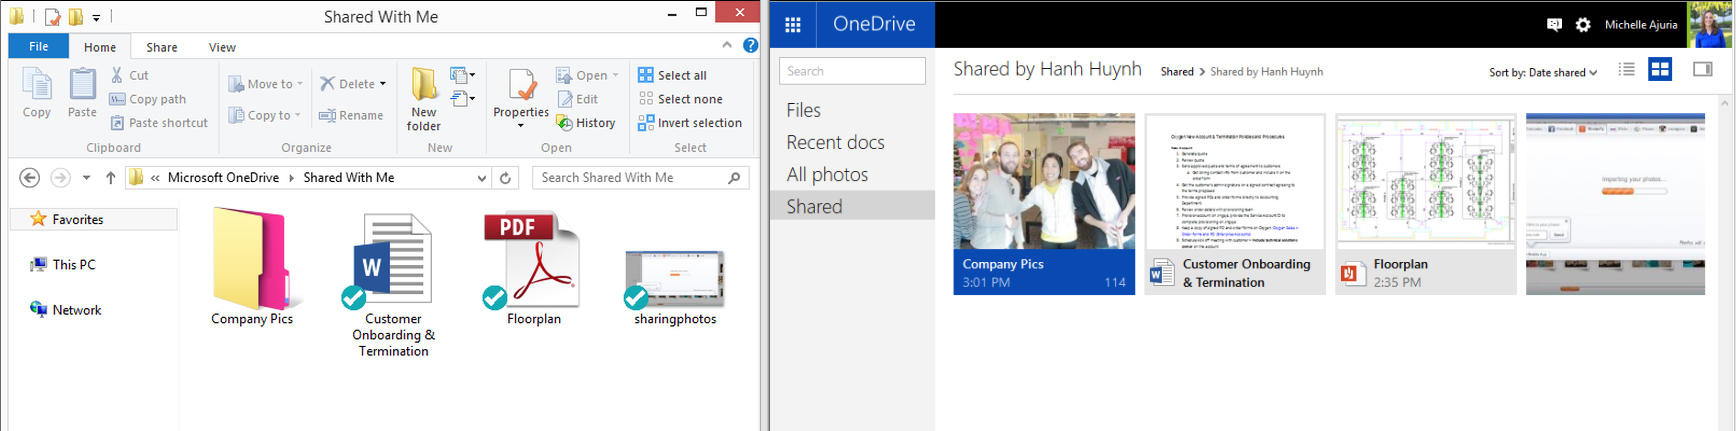 odrive mirrors all of your files, even the ones shared with you, within OneDrive.